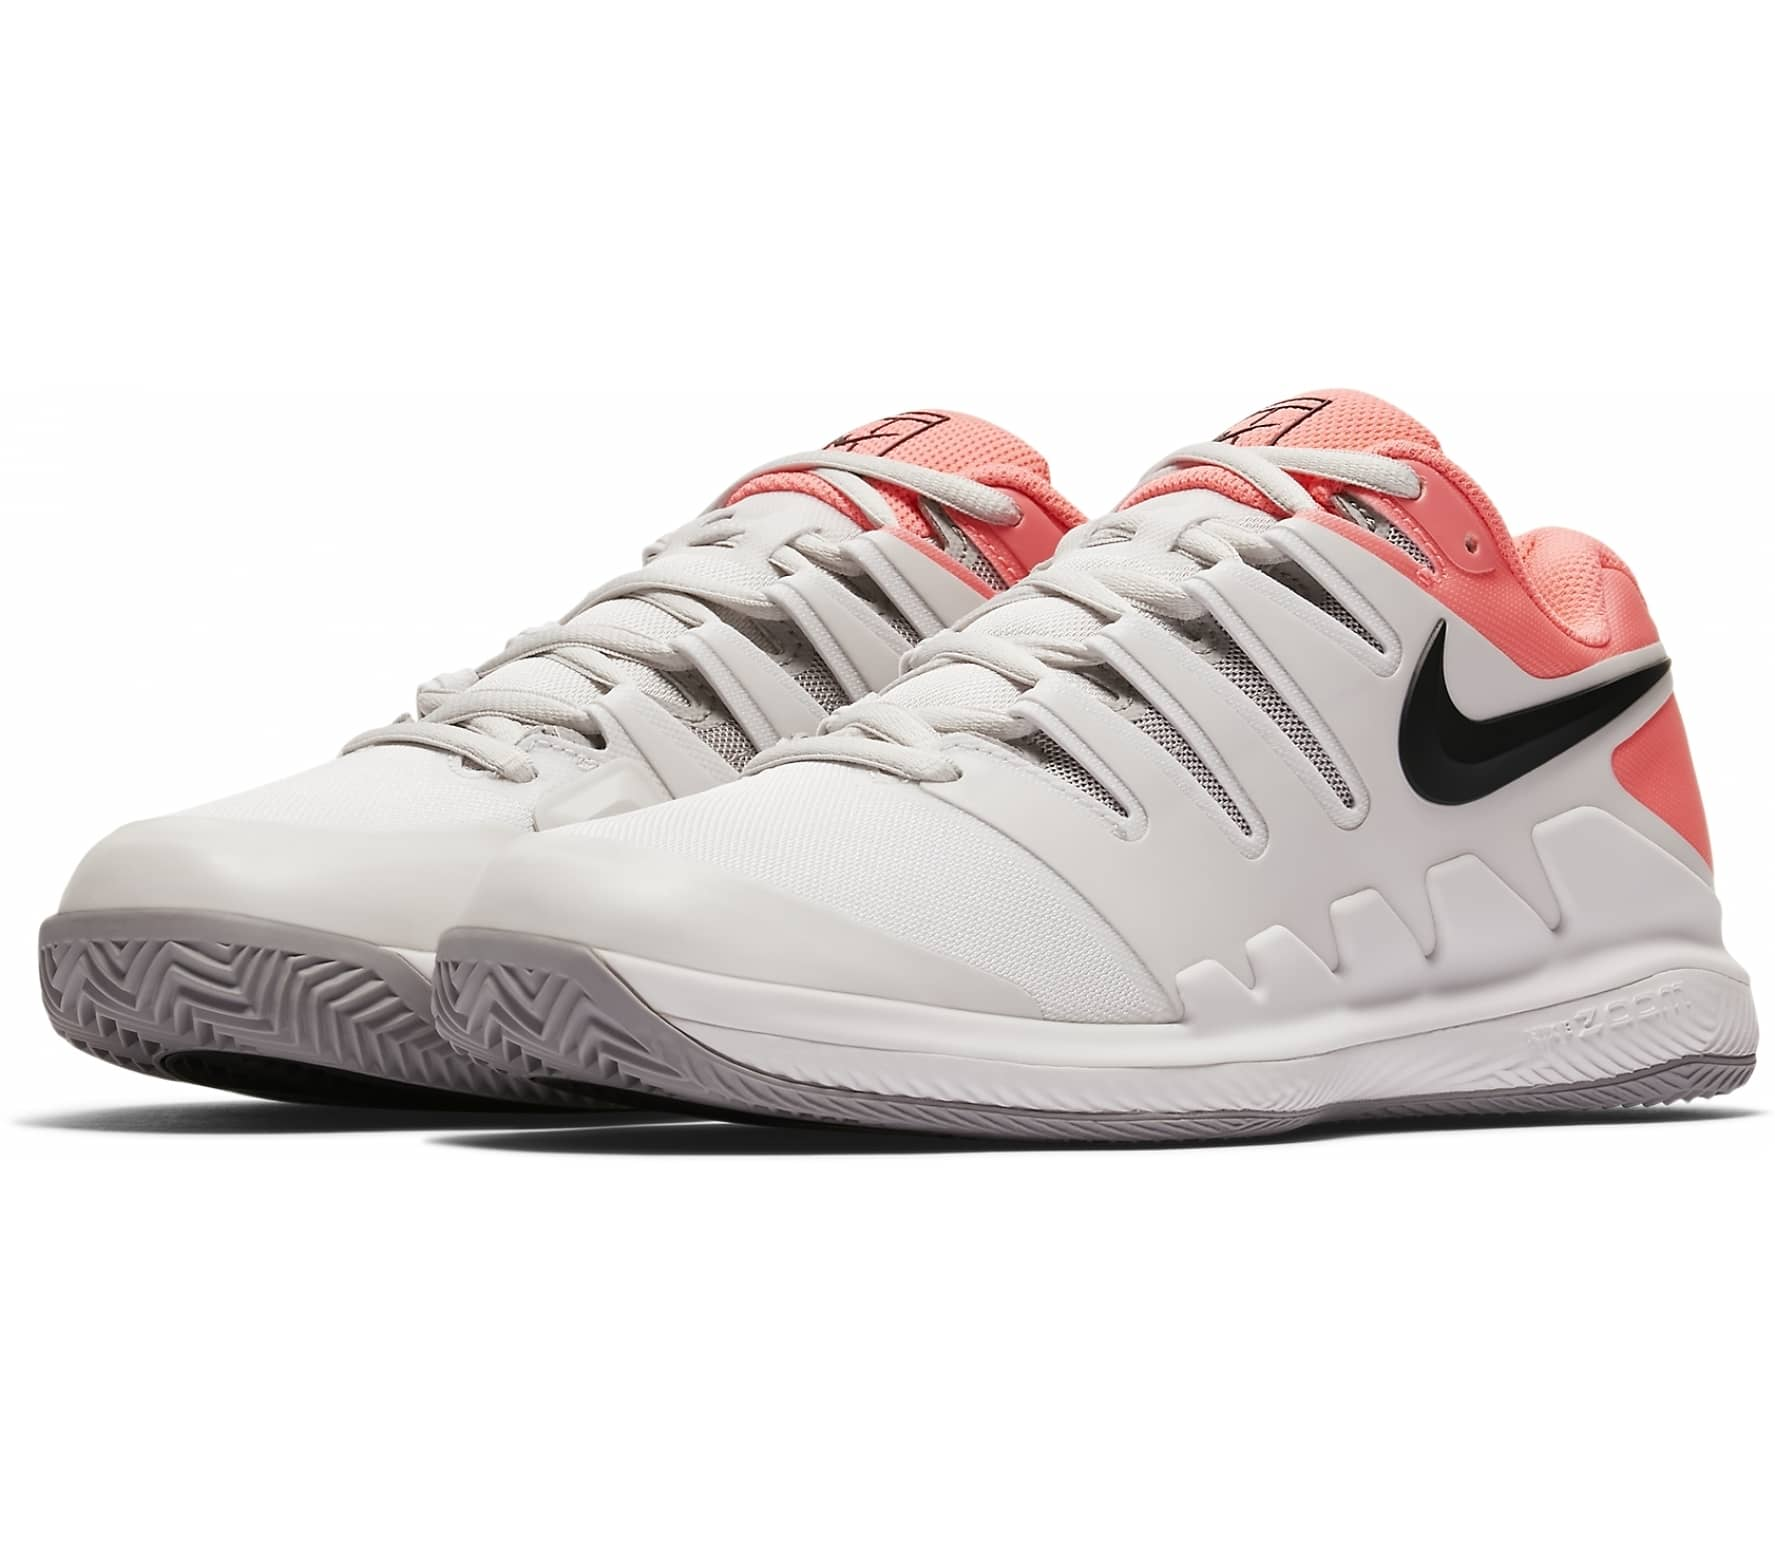 reputable site 452ec 47518 Nike - Air Zoom Vapor X Clay womens tennis shoes (grey